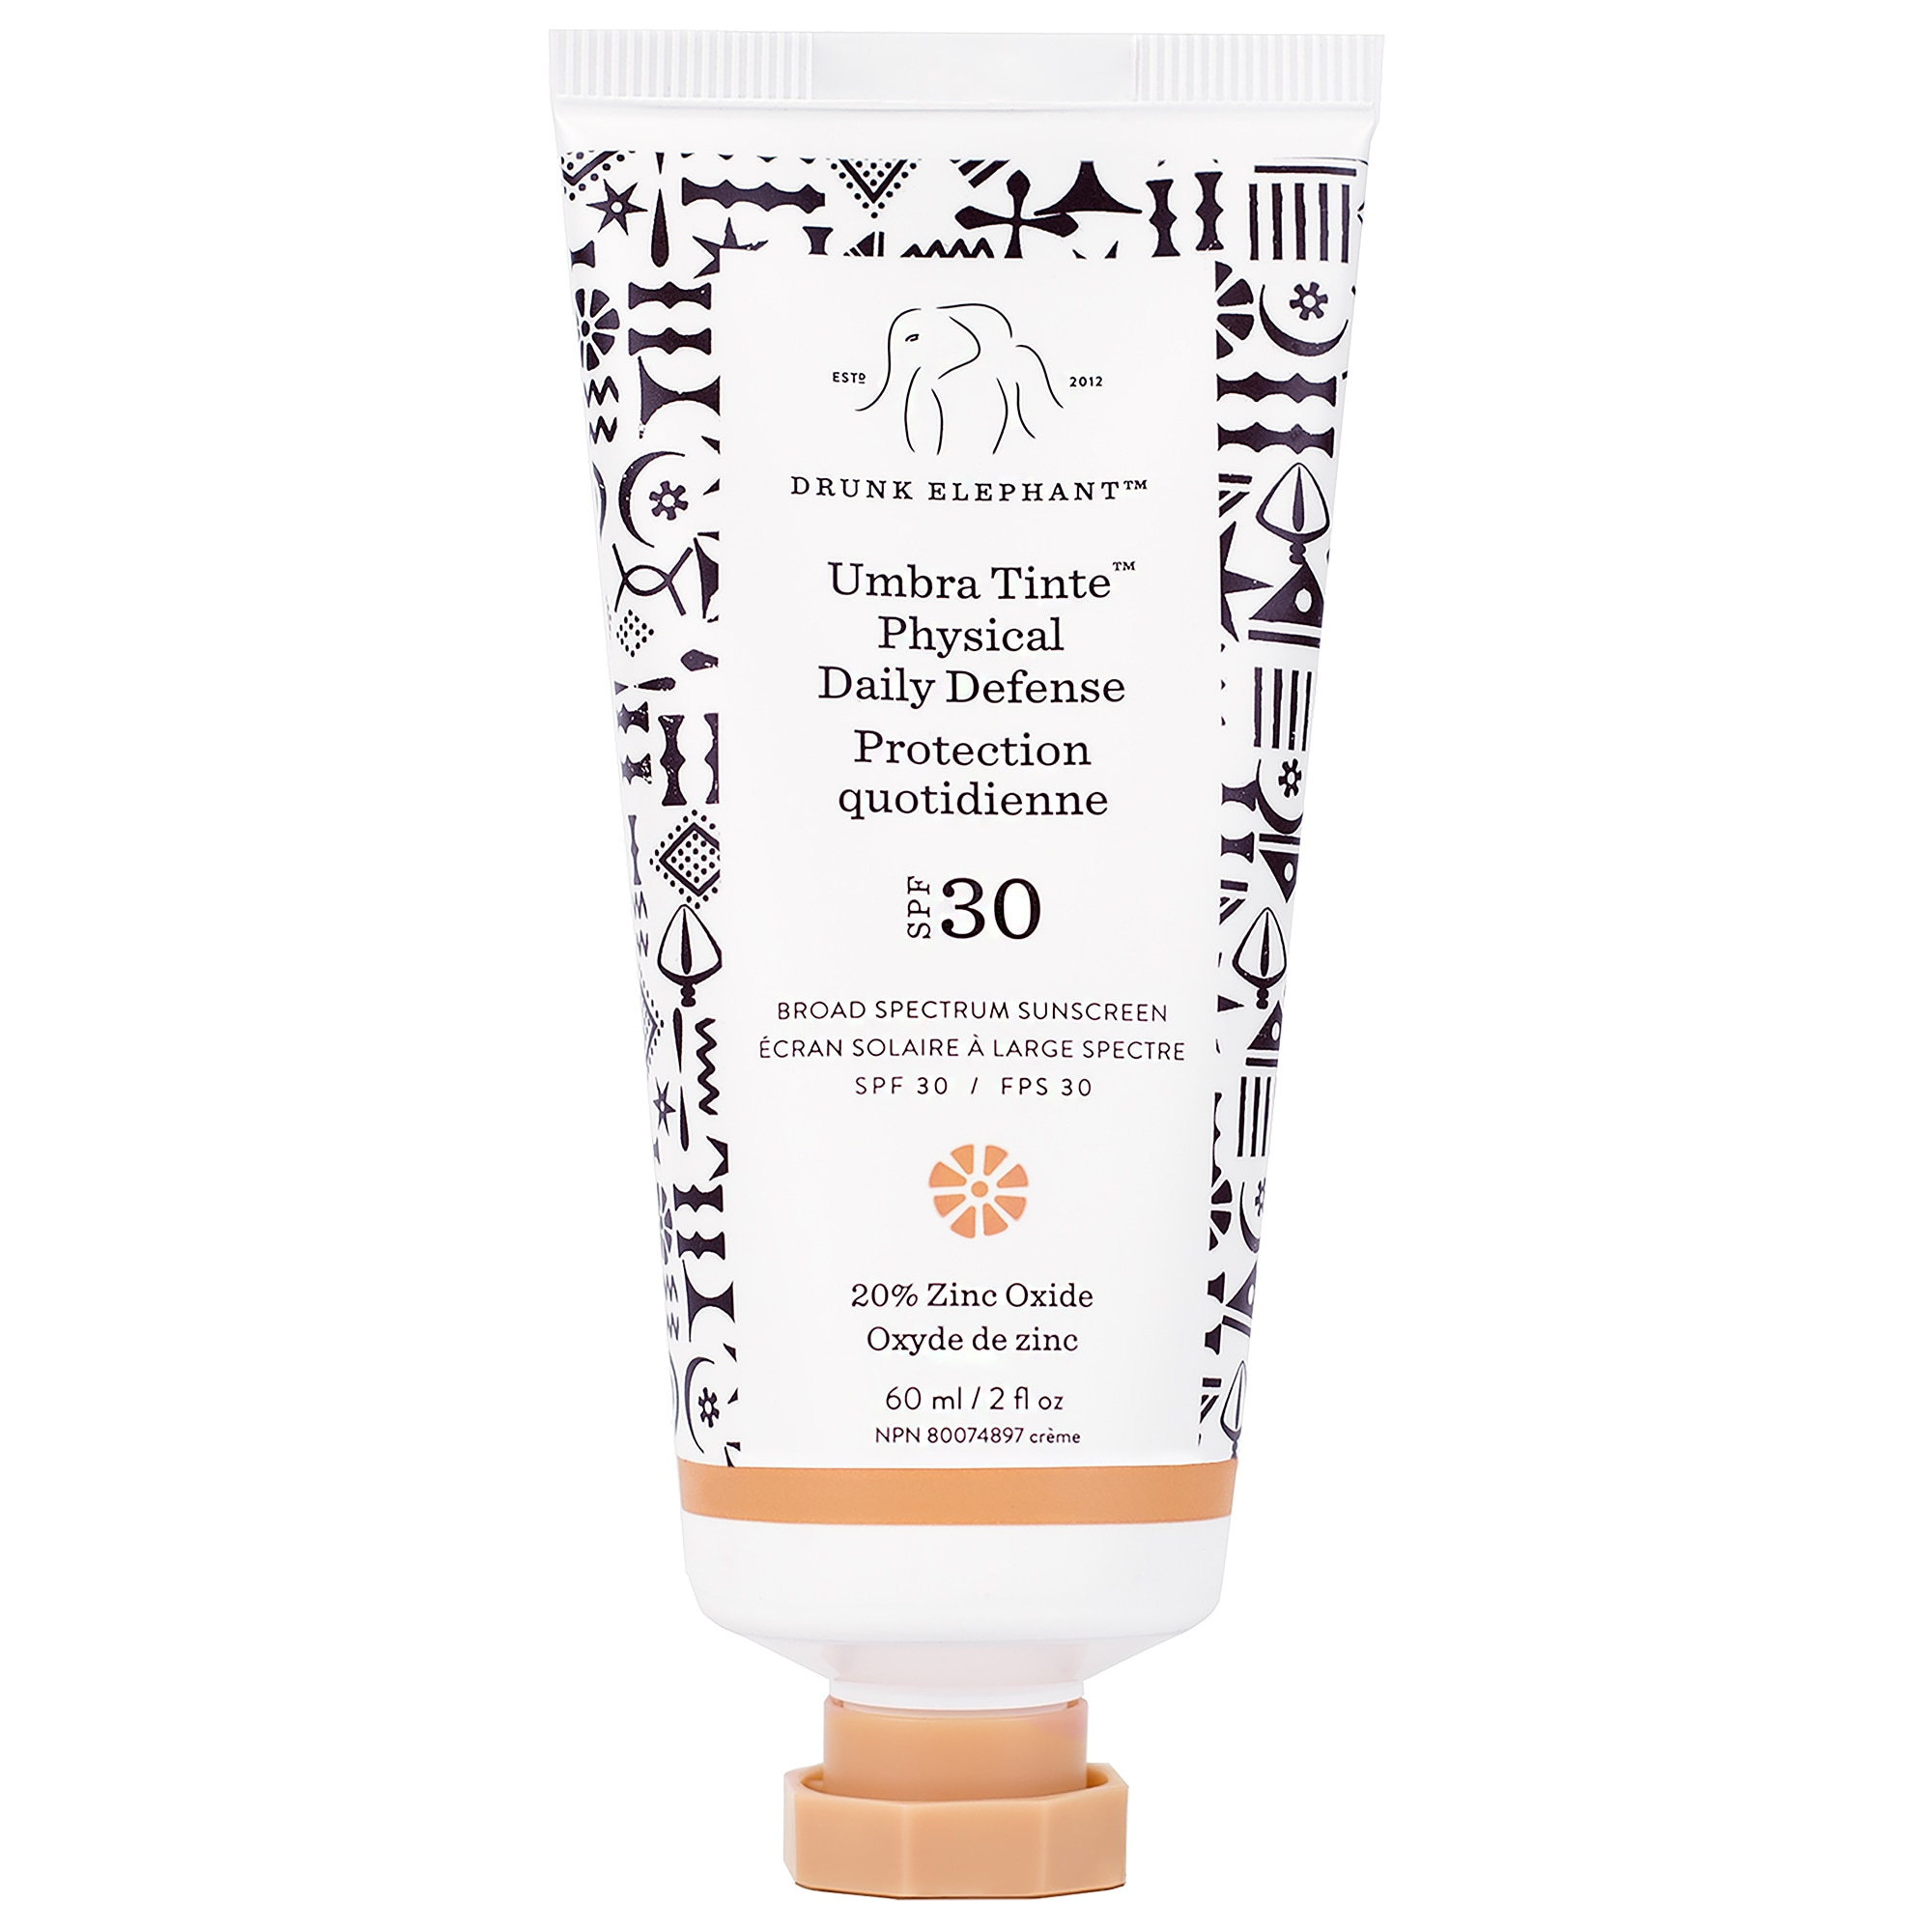 Drunk Elephant - Umbra Tinte Physical Daily Defense Broad Spectrum Sunscreen SPF 30